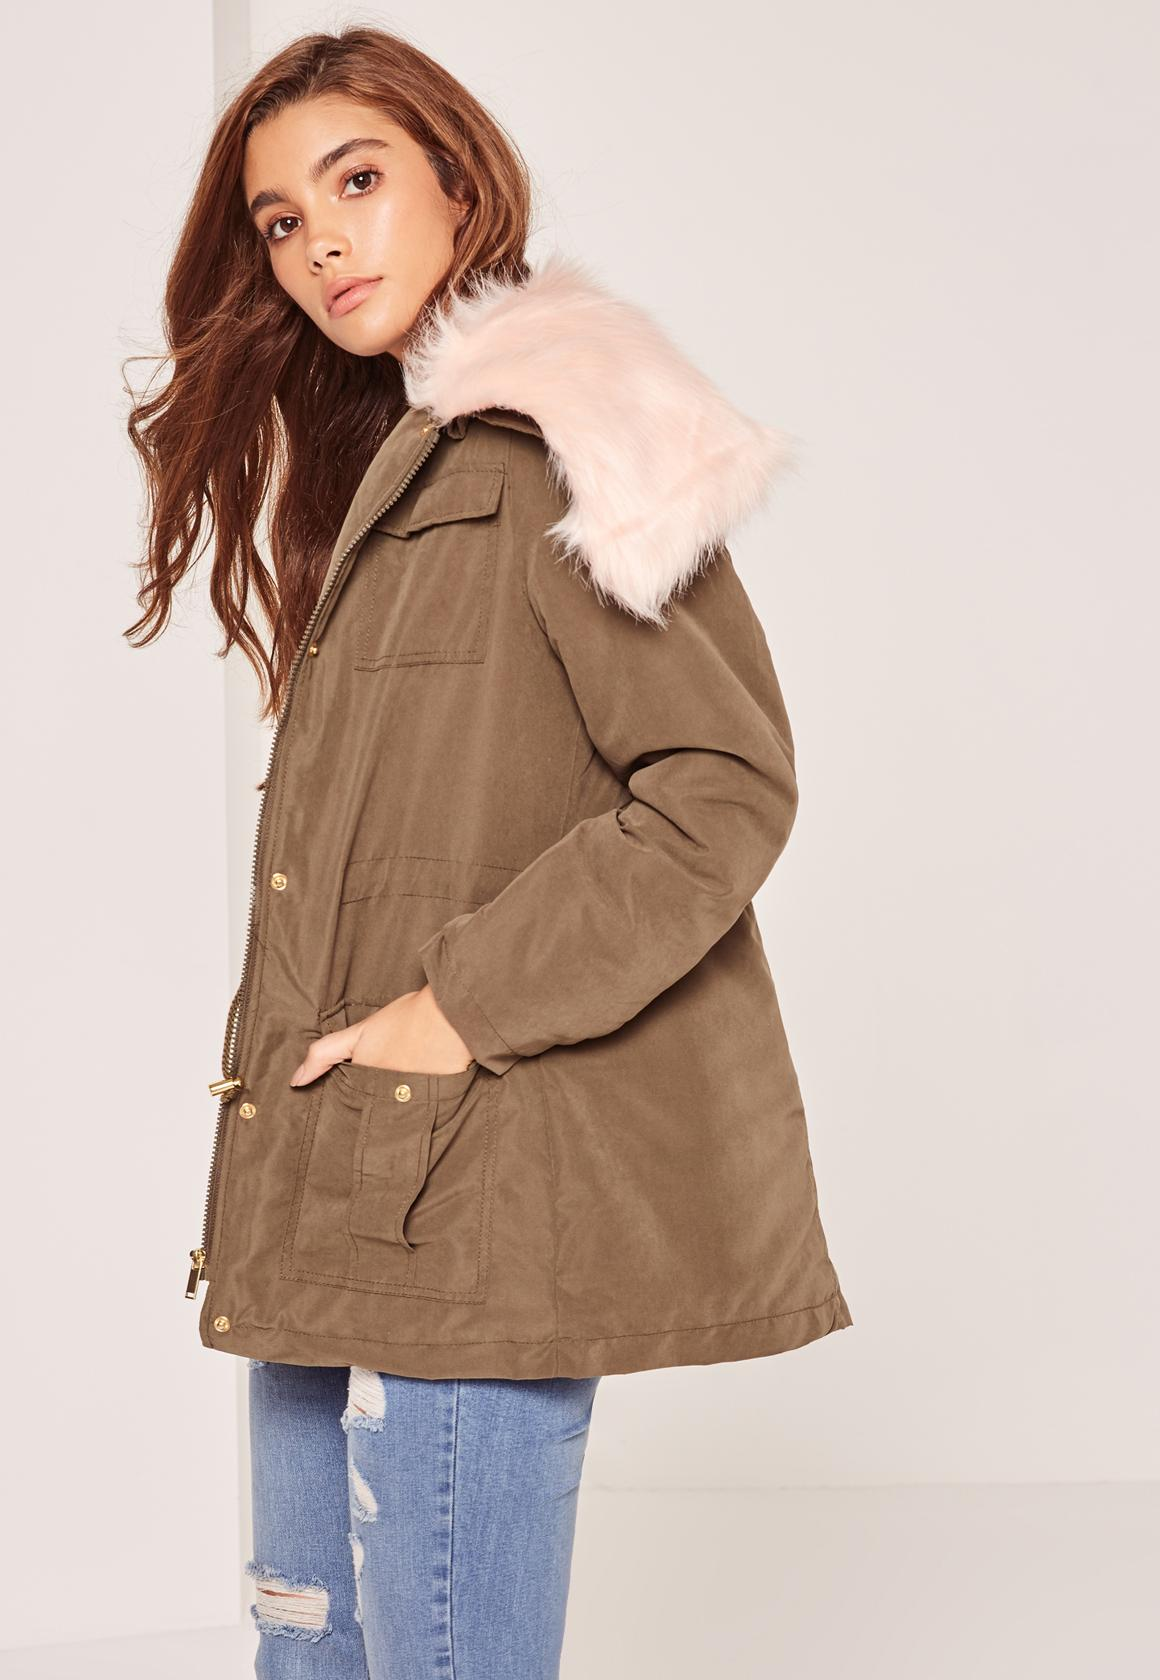 Khaki Fur Collar Parka Coat - Missguided